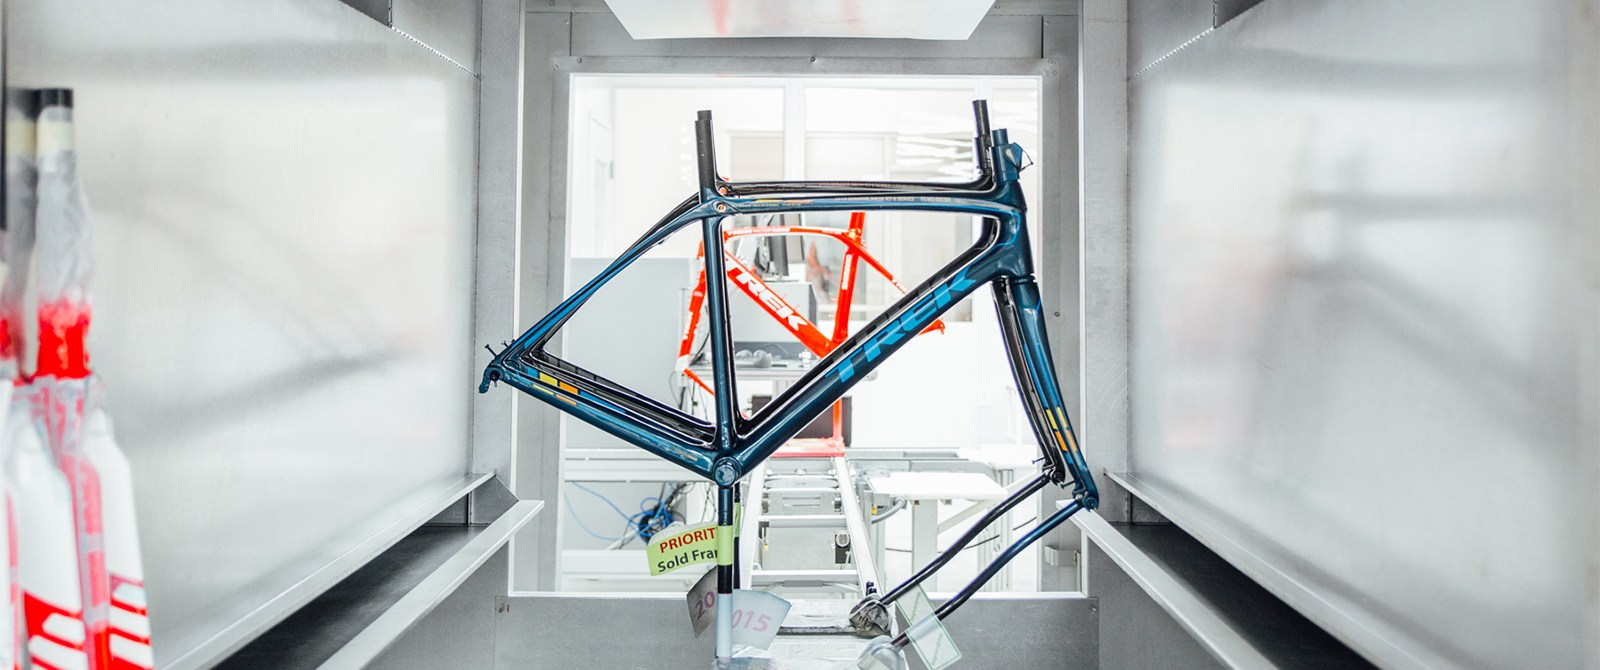 N + Project One | Trek Factory Experience